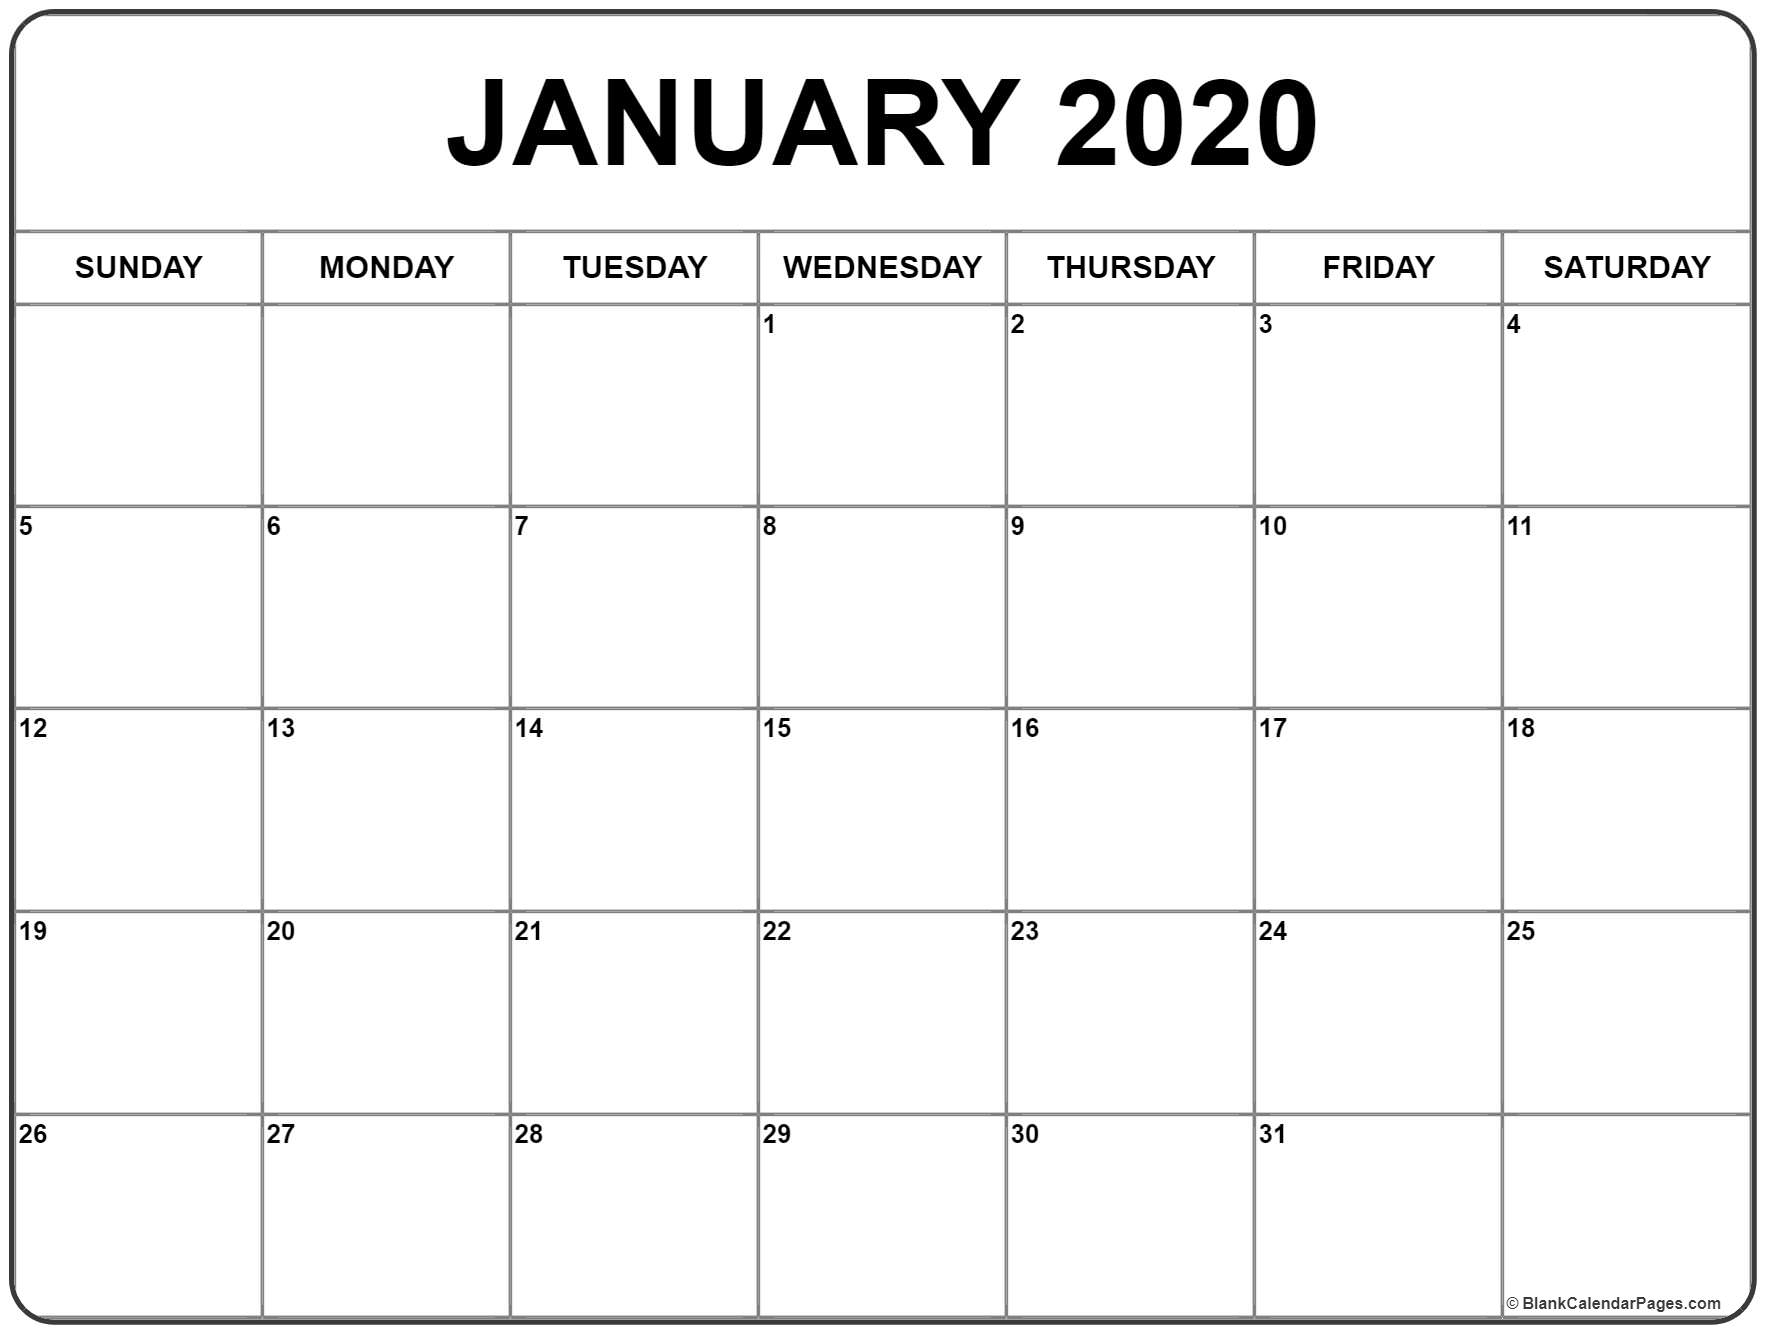 January 2020 Calendar | Free Printable Monthly Calendars intended for Large Box Printable Calendar 2020 Google